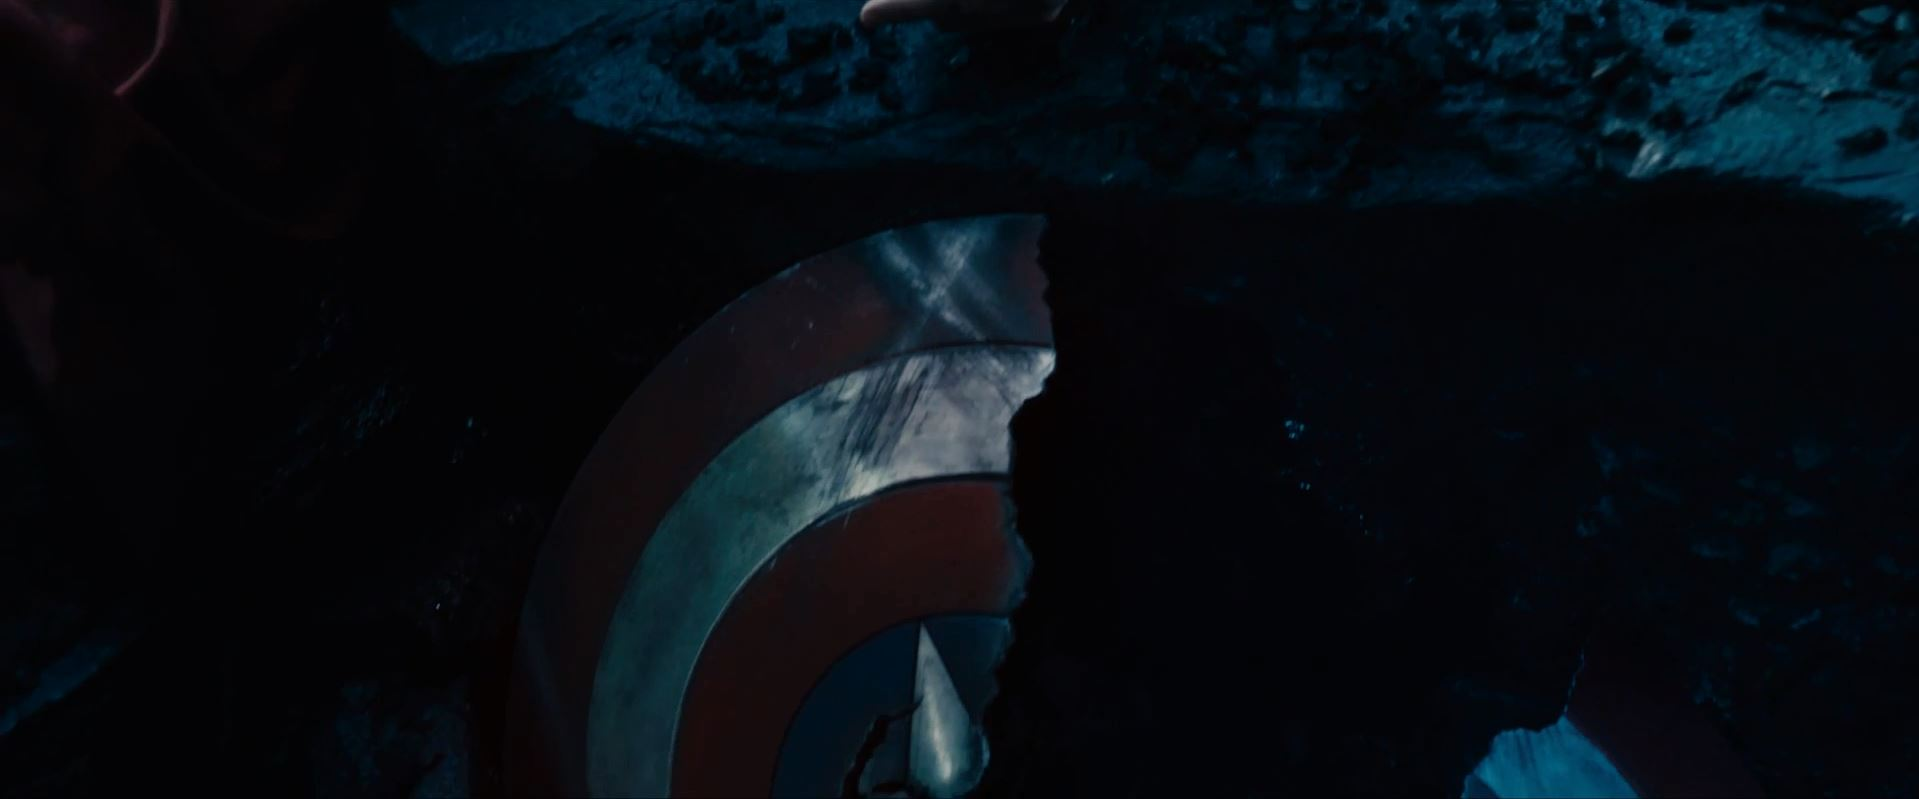 Avengers Age Of Ultron Trailer Released - Broken Captain America shield